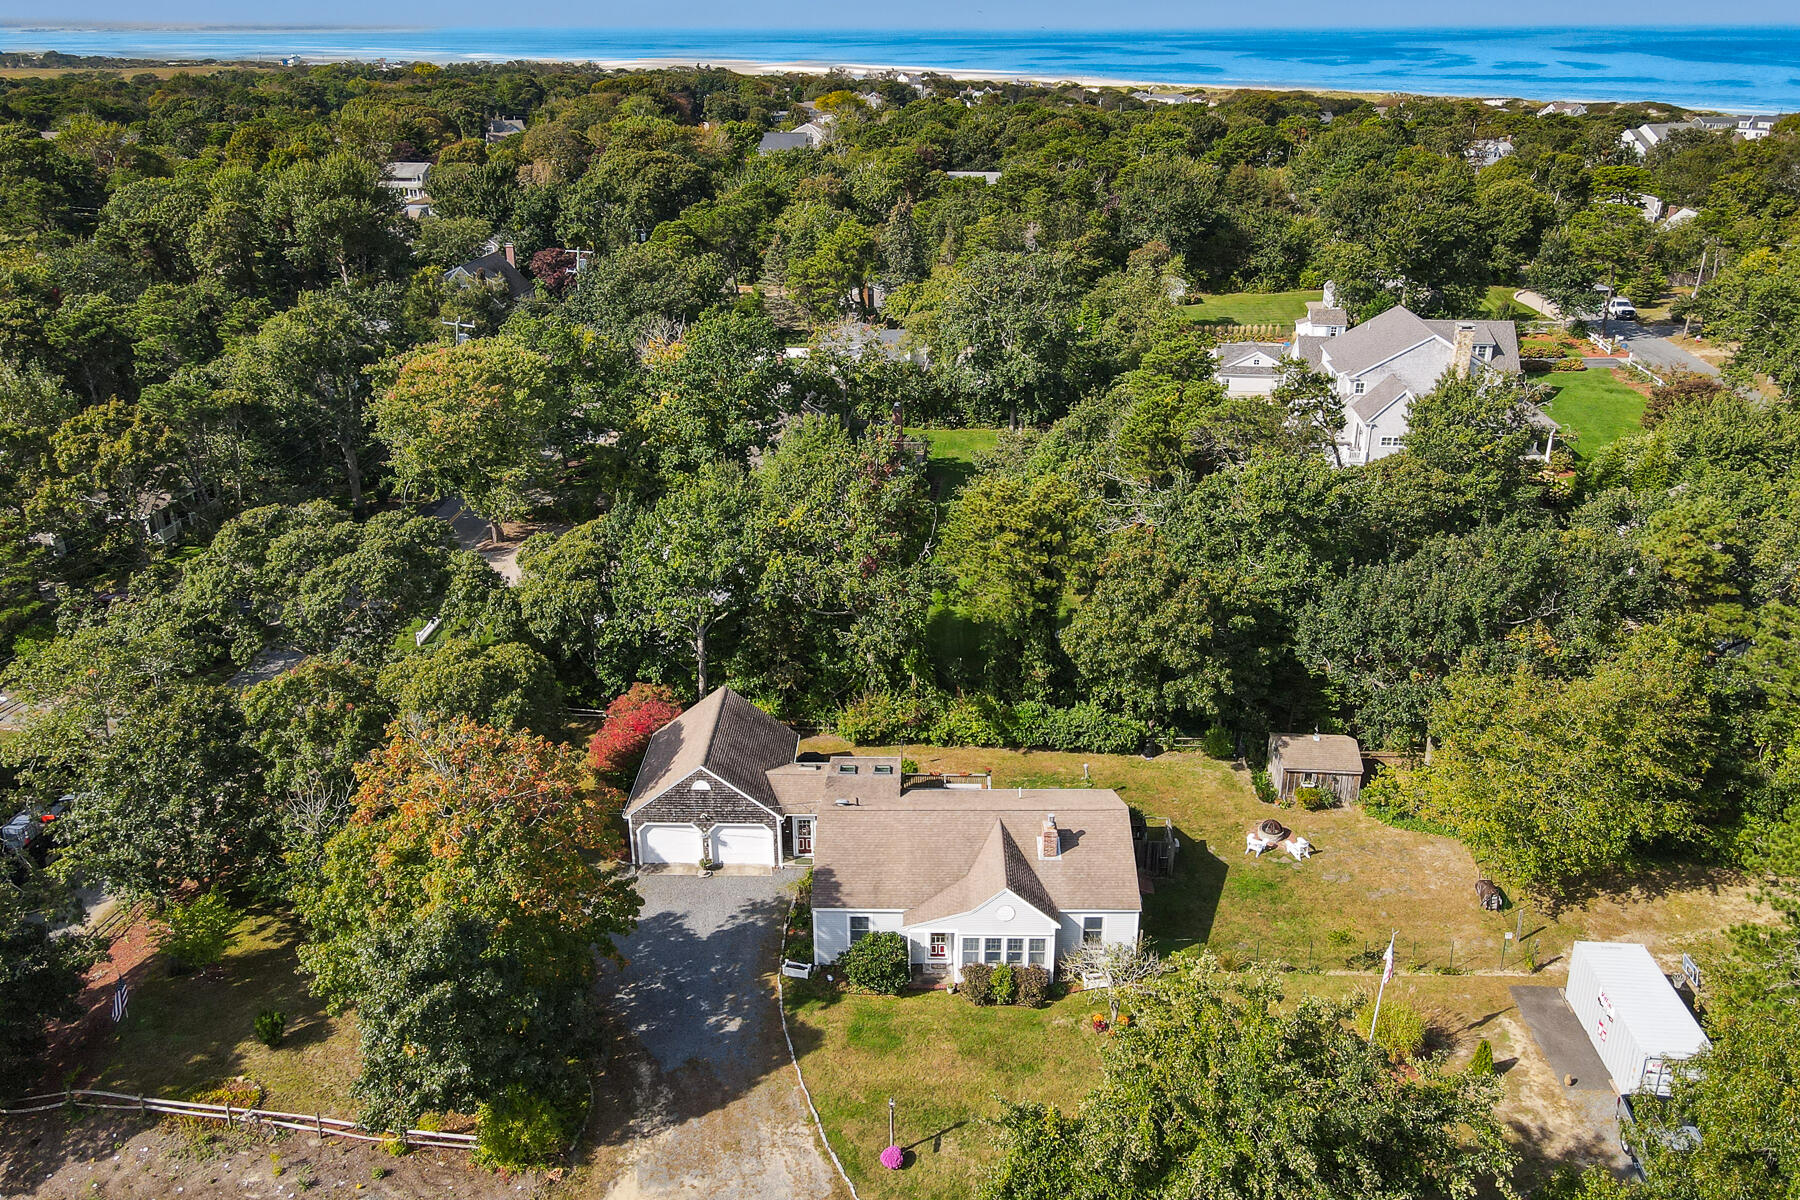 3 Hippogriffe Road, Dennis MA, 02638 details